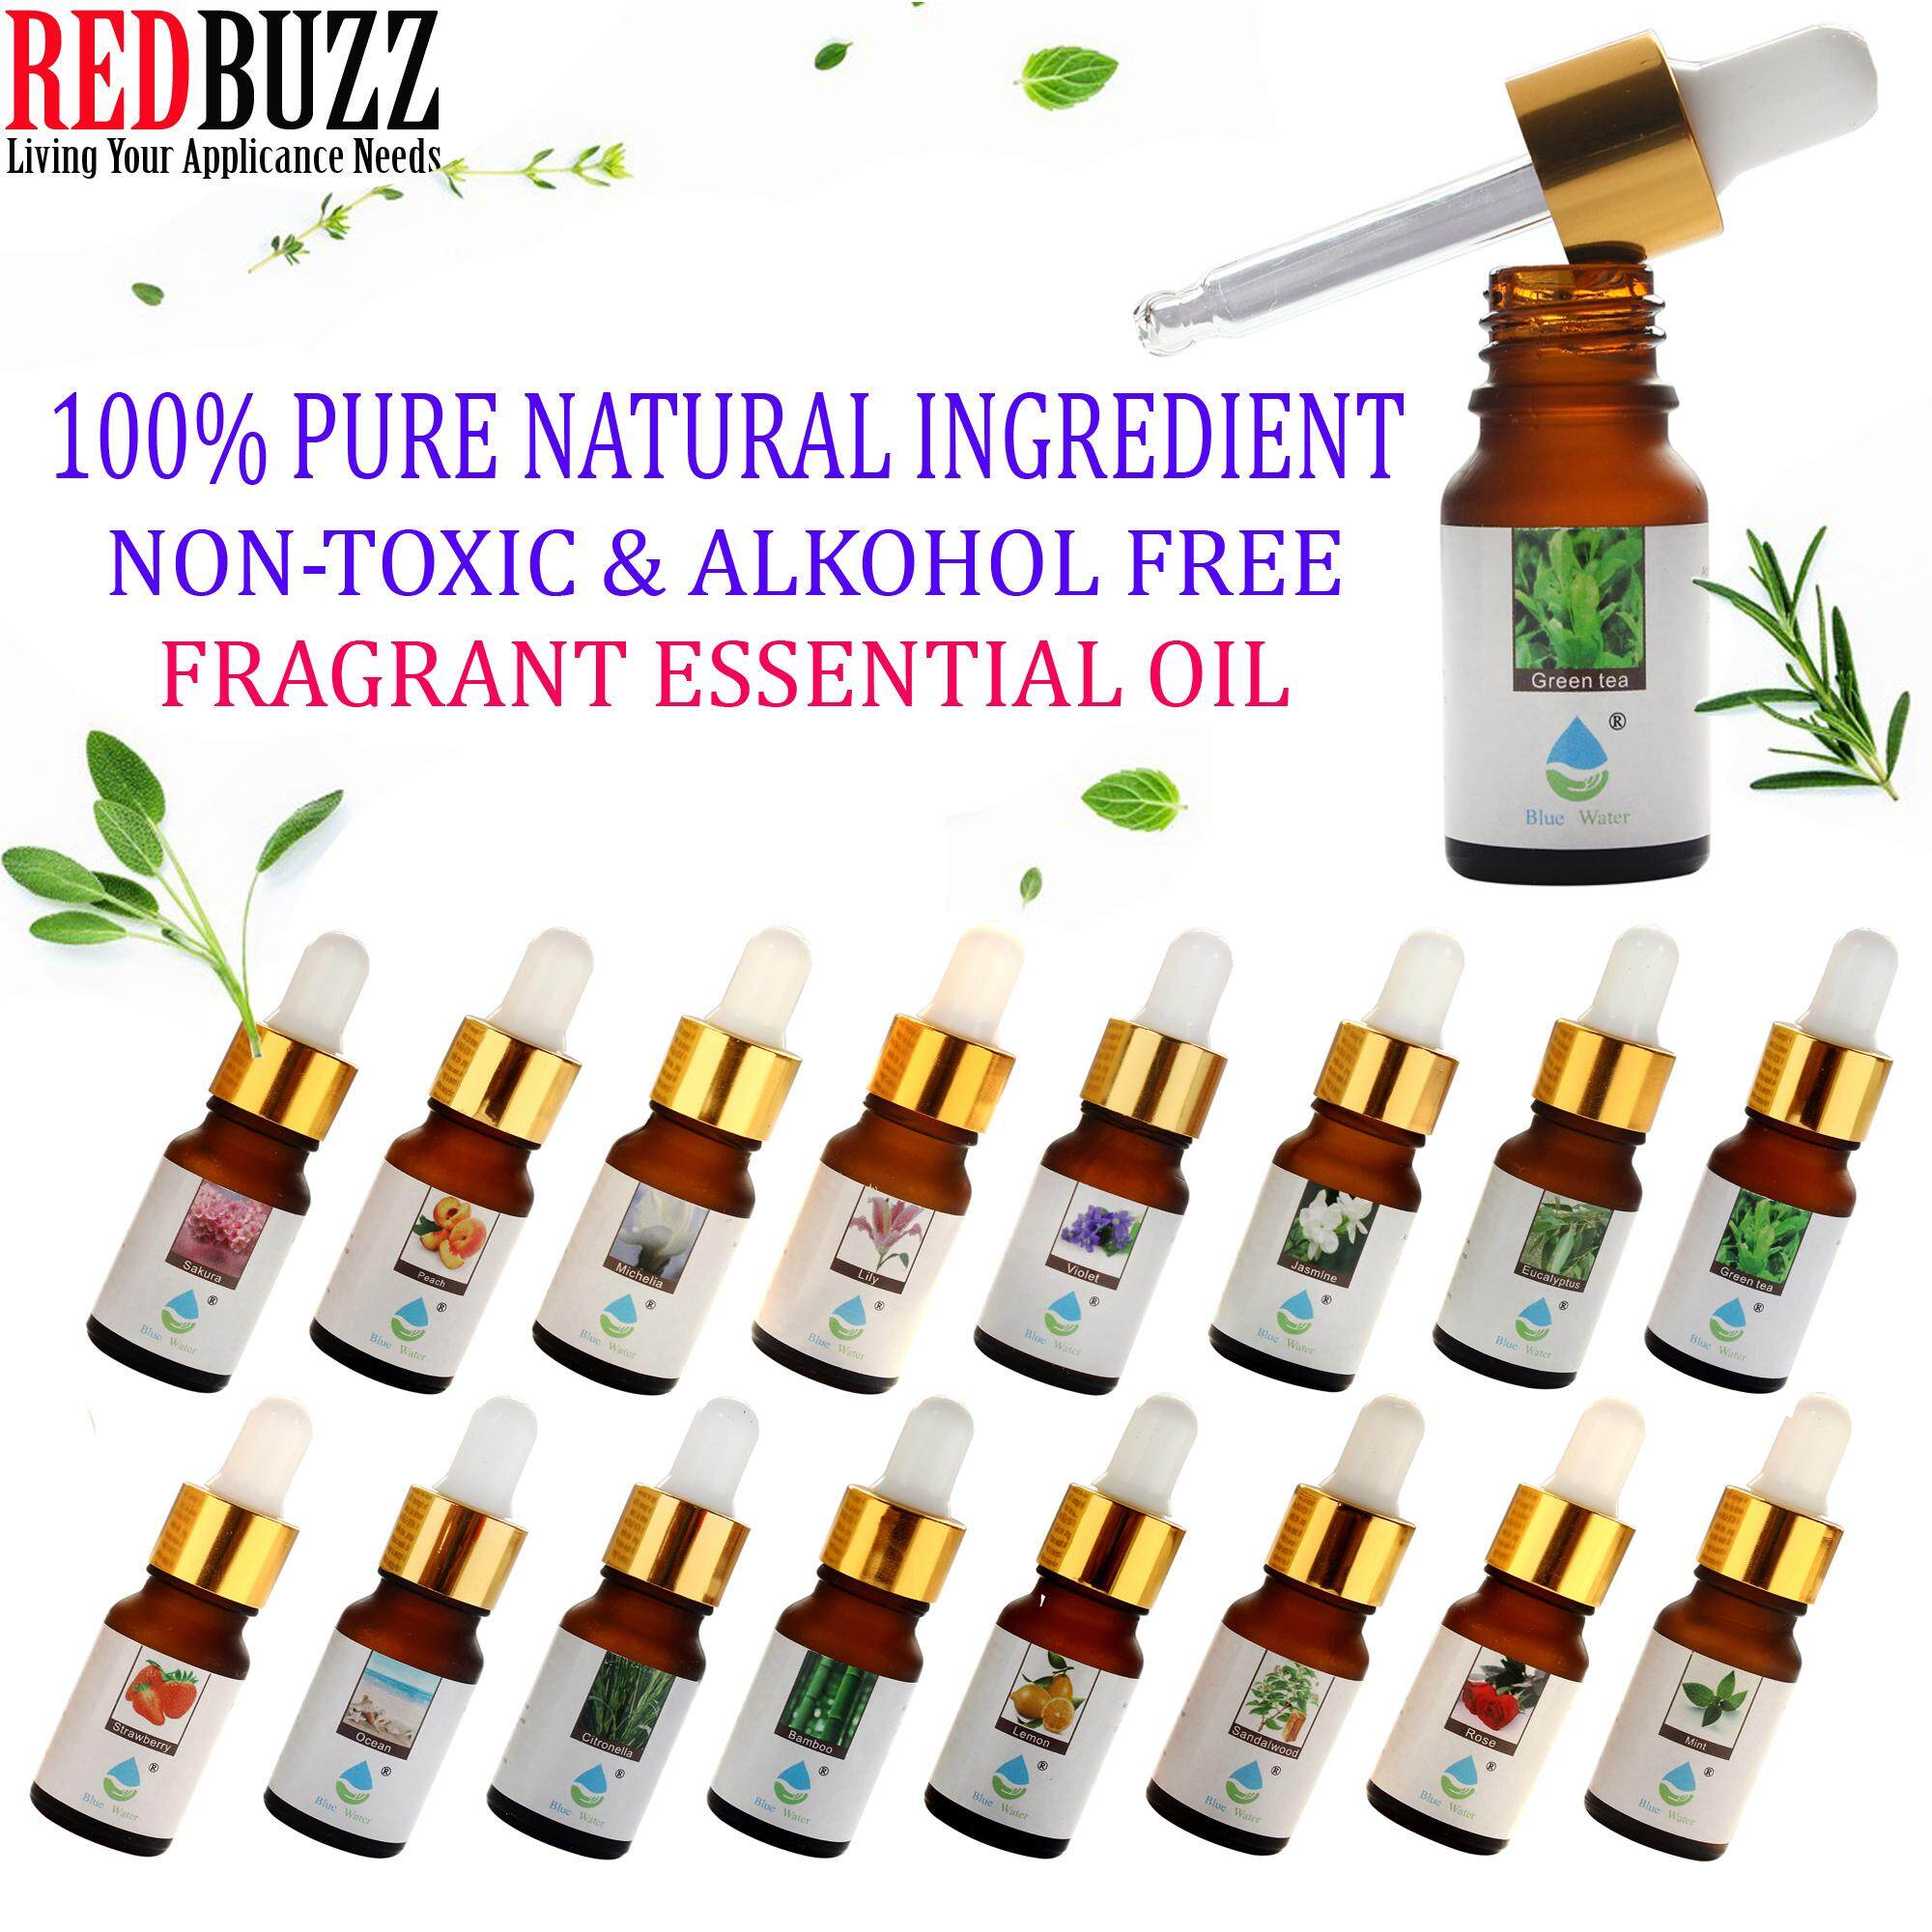 REDBUZZ Pure Aroma Oil Concentrate / Essential Oil / Aromatherapy 10ml - 100% Pure Natural Ingredient